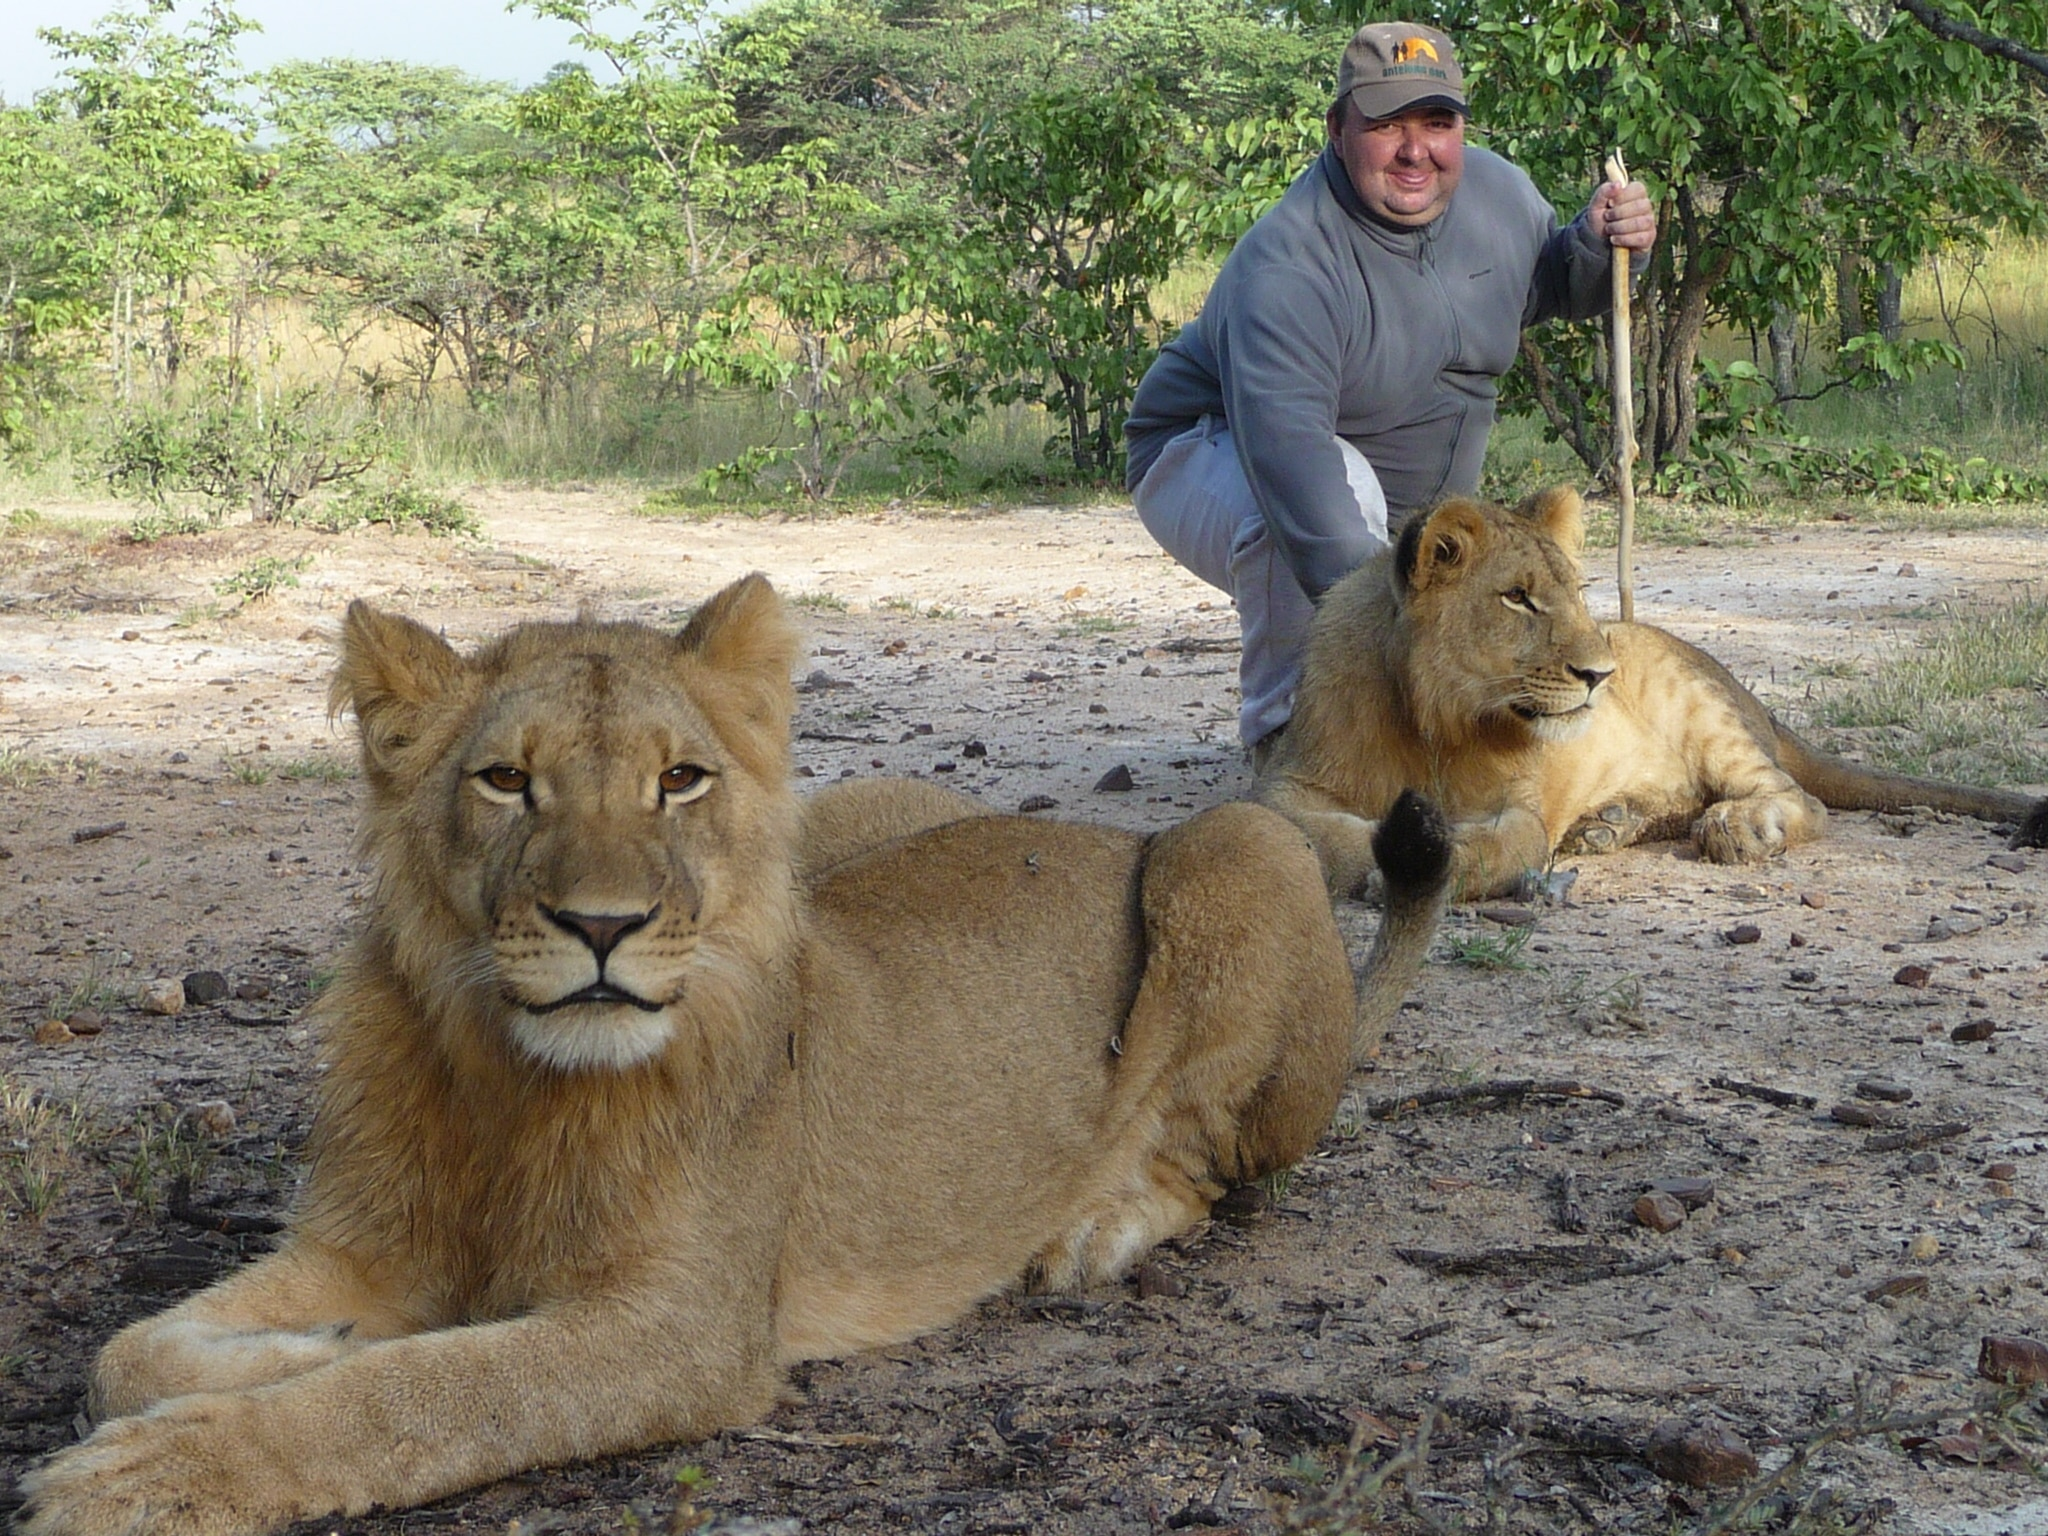 Walking with lions - The world's cruelest tourist attractions